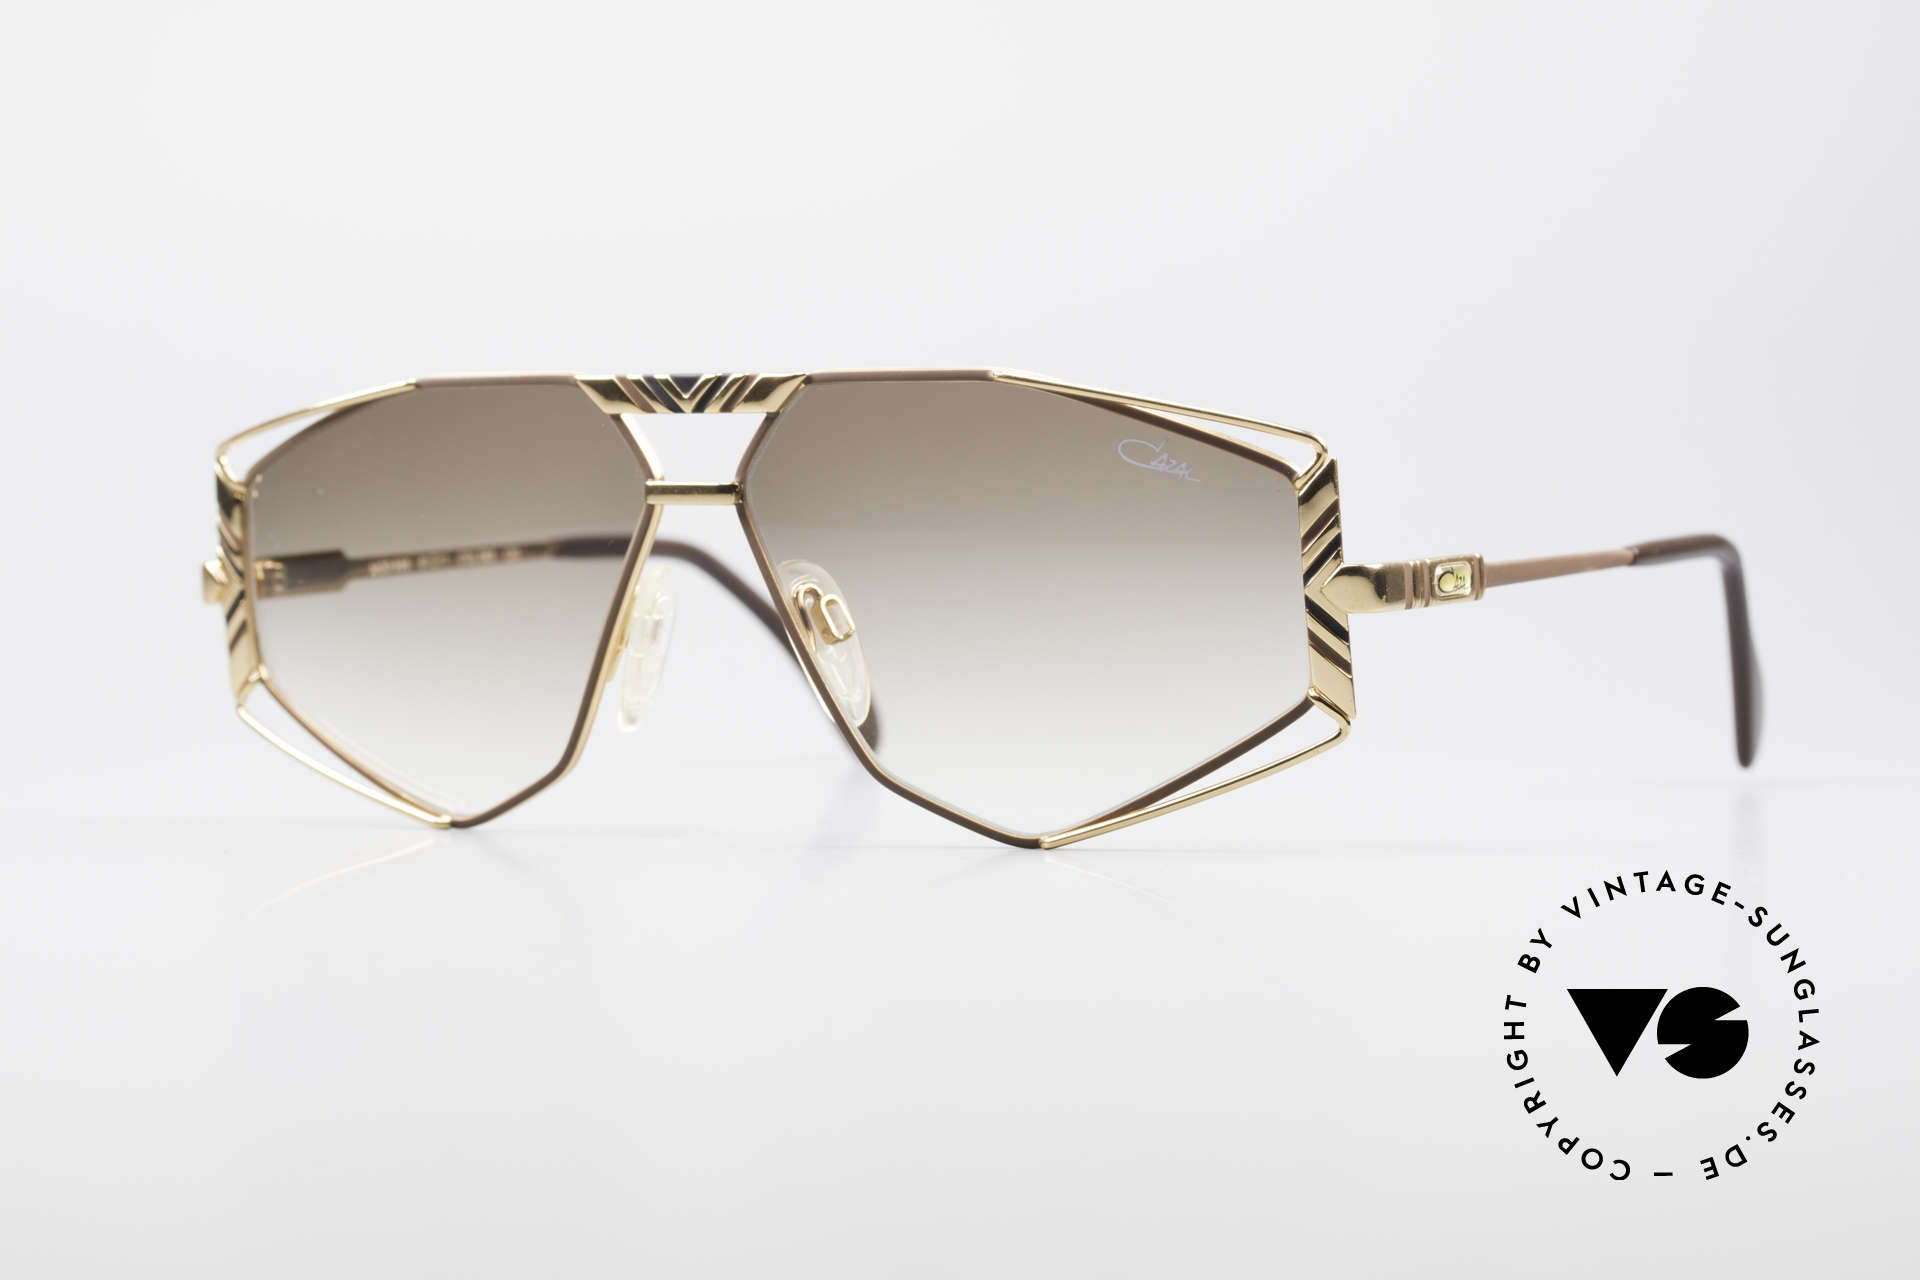 Cazal 956 Cari Zalloni Vintage Frame, artistic Cazal designer sunglasses from 1989/90, Made for Men and Women